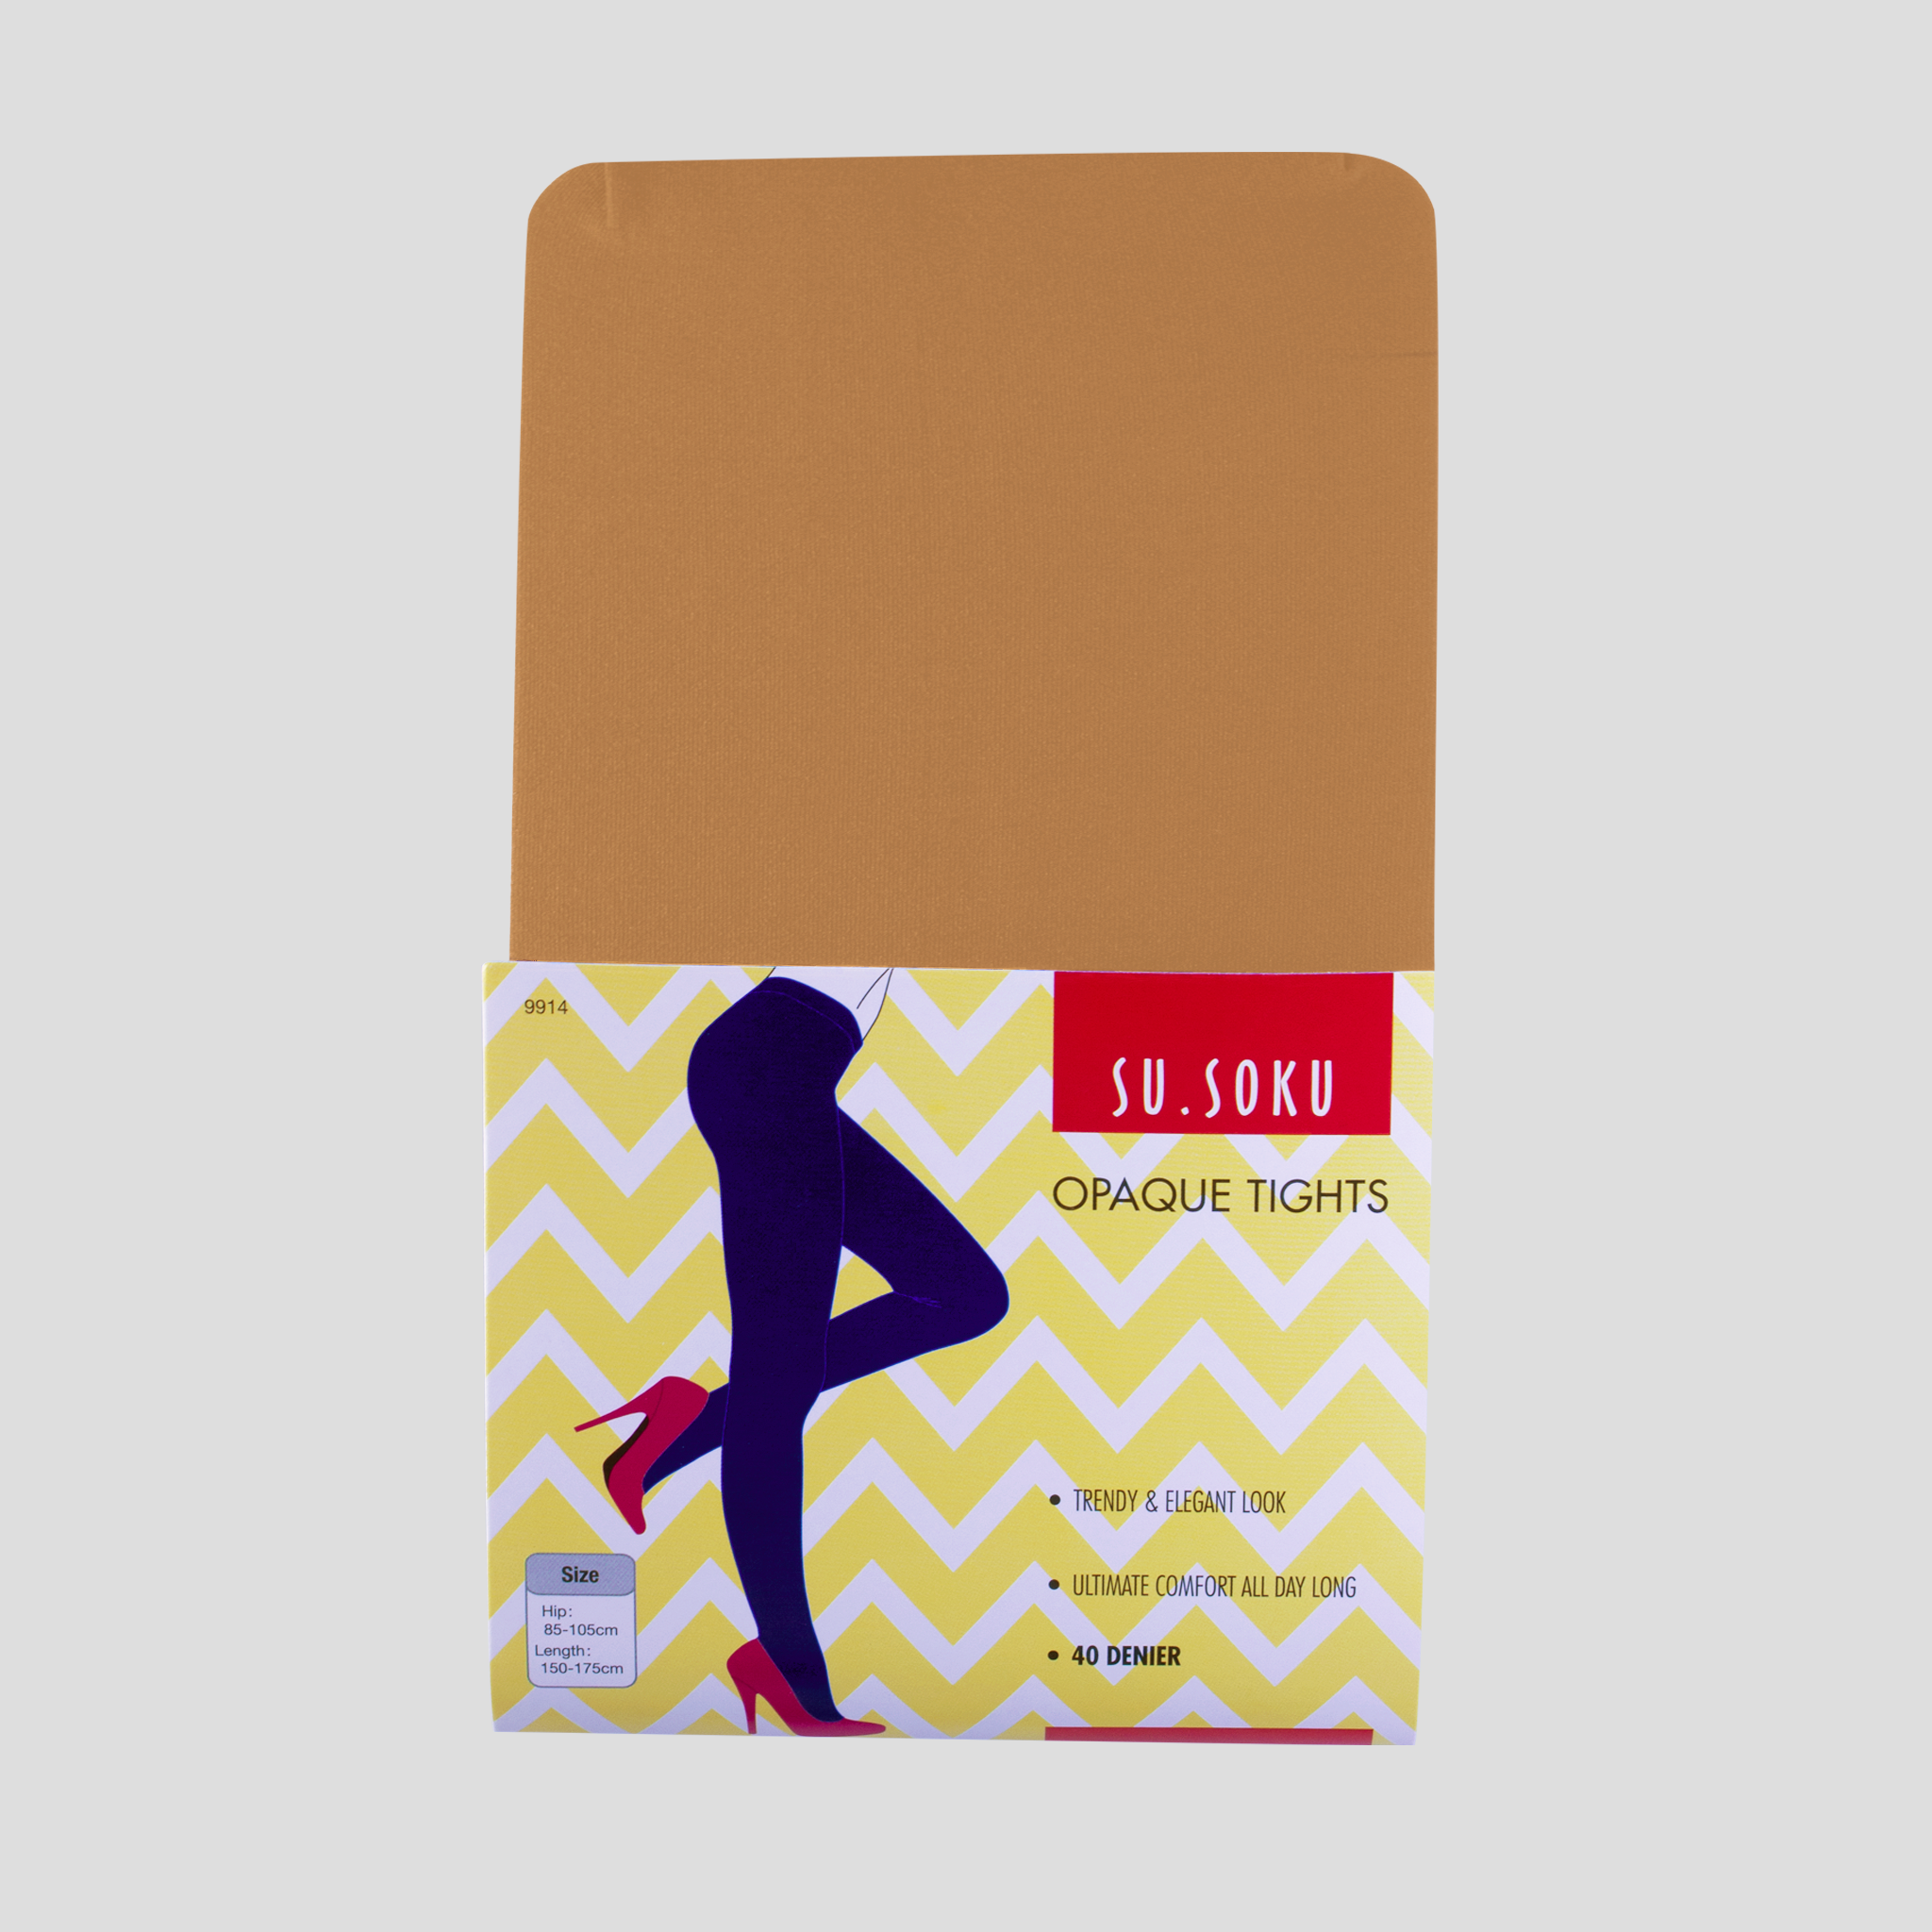 Opaque covered tights packaging, colour skin